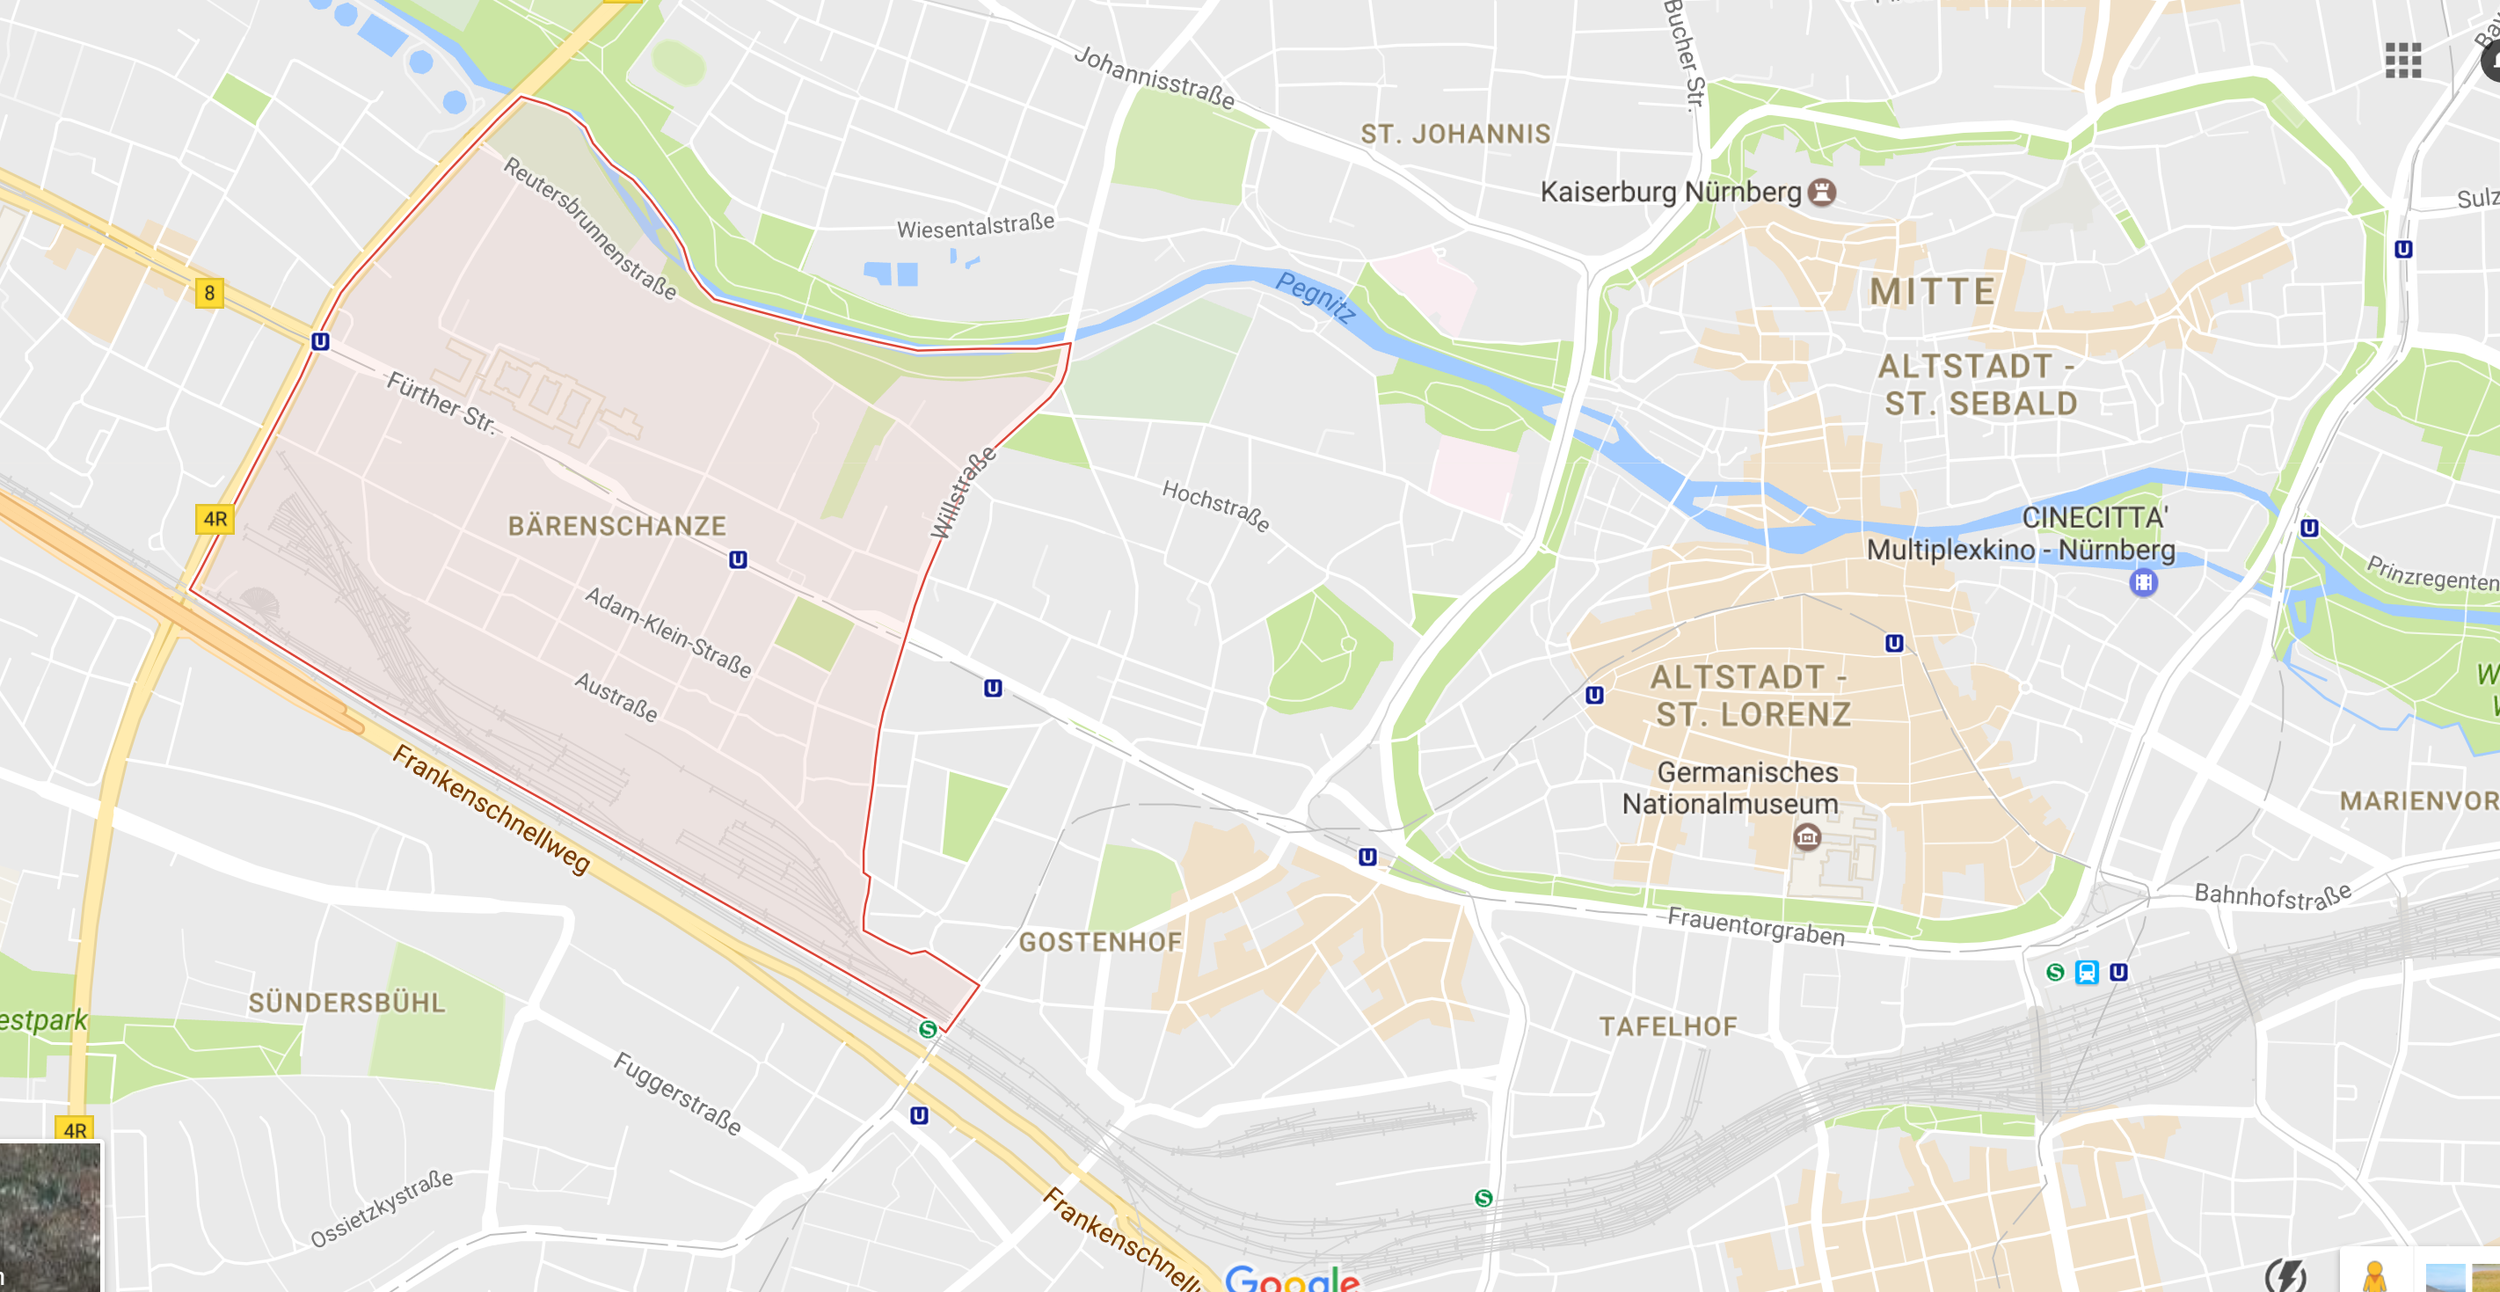 Bärenschanze is the pink area to the left, with Nuremberg's old town to the right